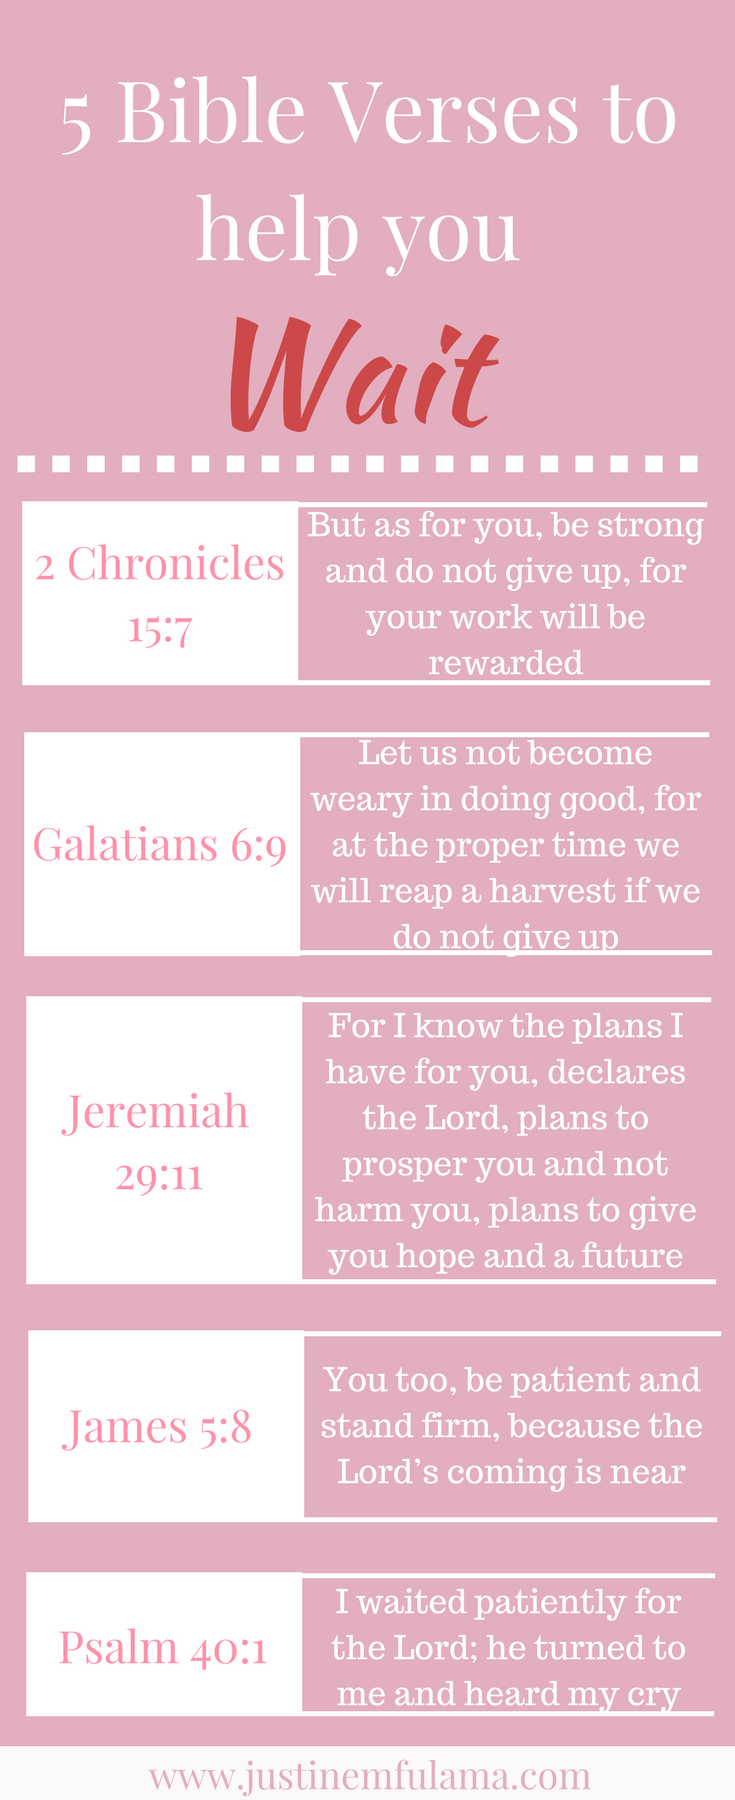 Learn to wait on God: Use these 5 Bible Verses to improve patience #quotes #prayer